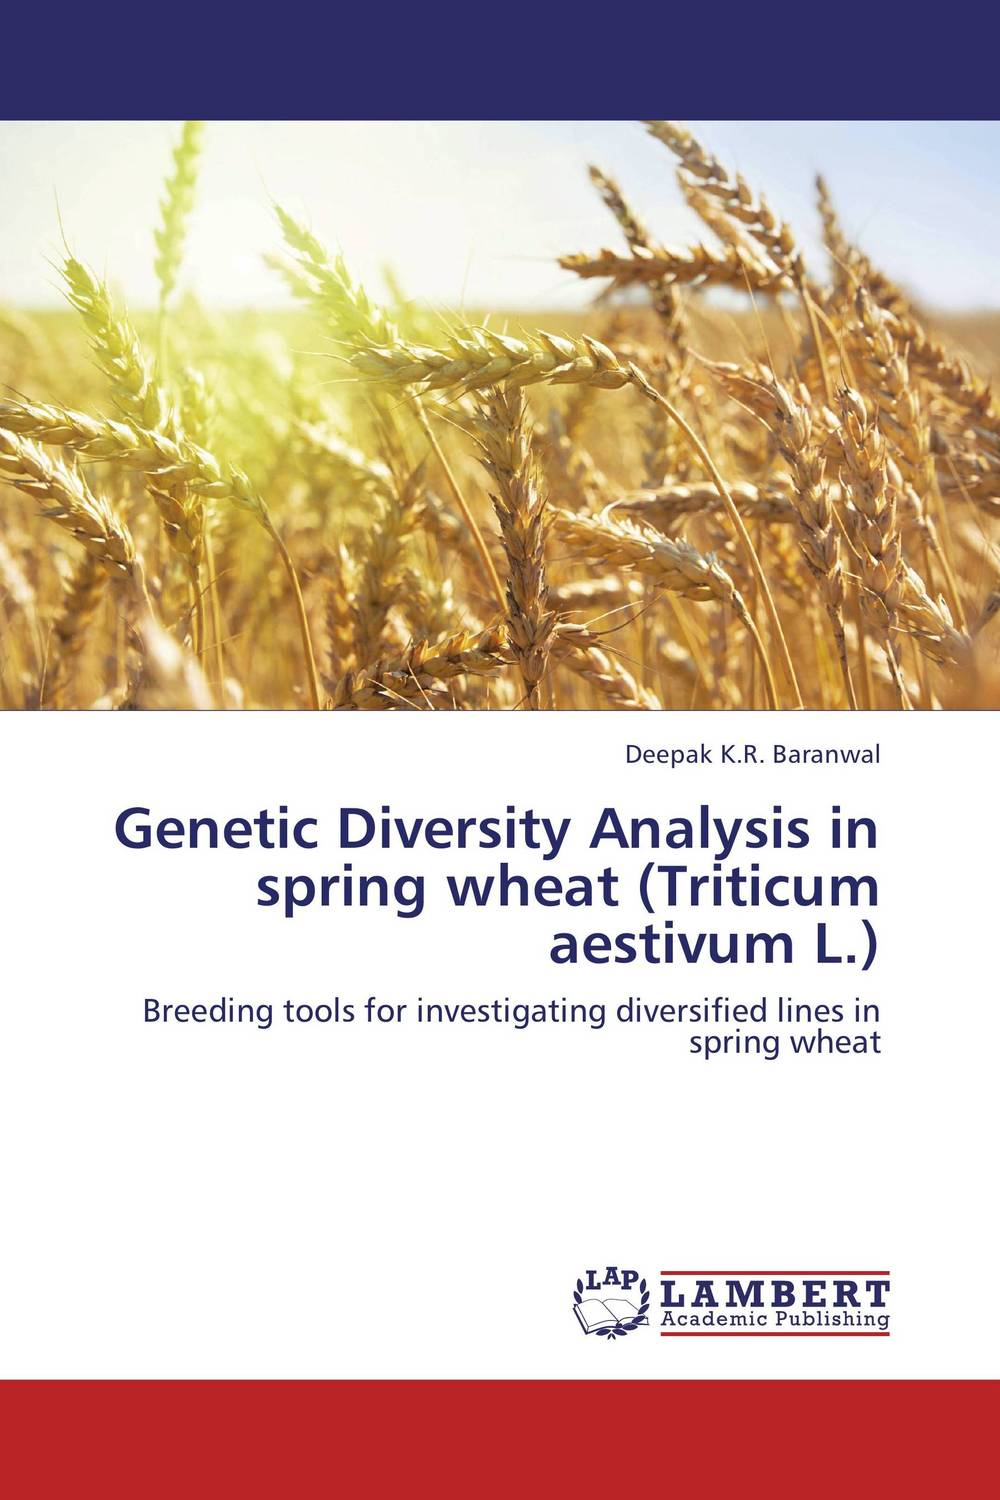 Genetic Diversity Analysis in spring wheat  (Triticum aestivum L.) vaishali shami naresh pratap singh and pramod kumar pal morpho physio and genetic diversity analysis on indian wheat genotypes